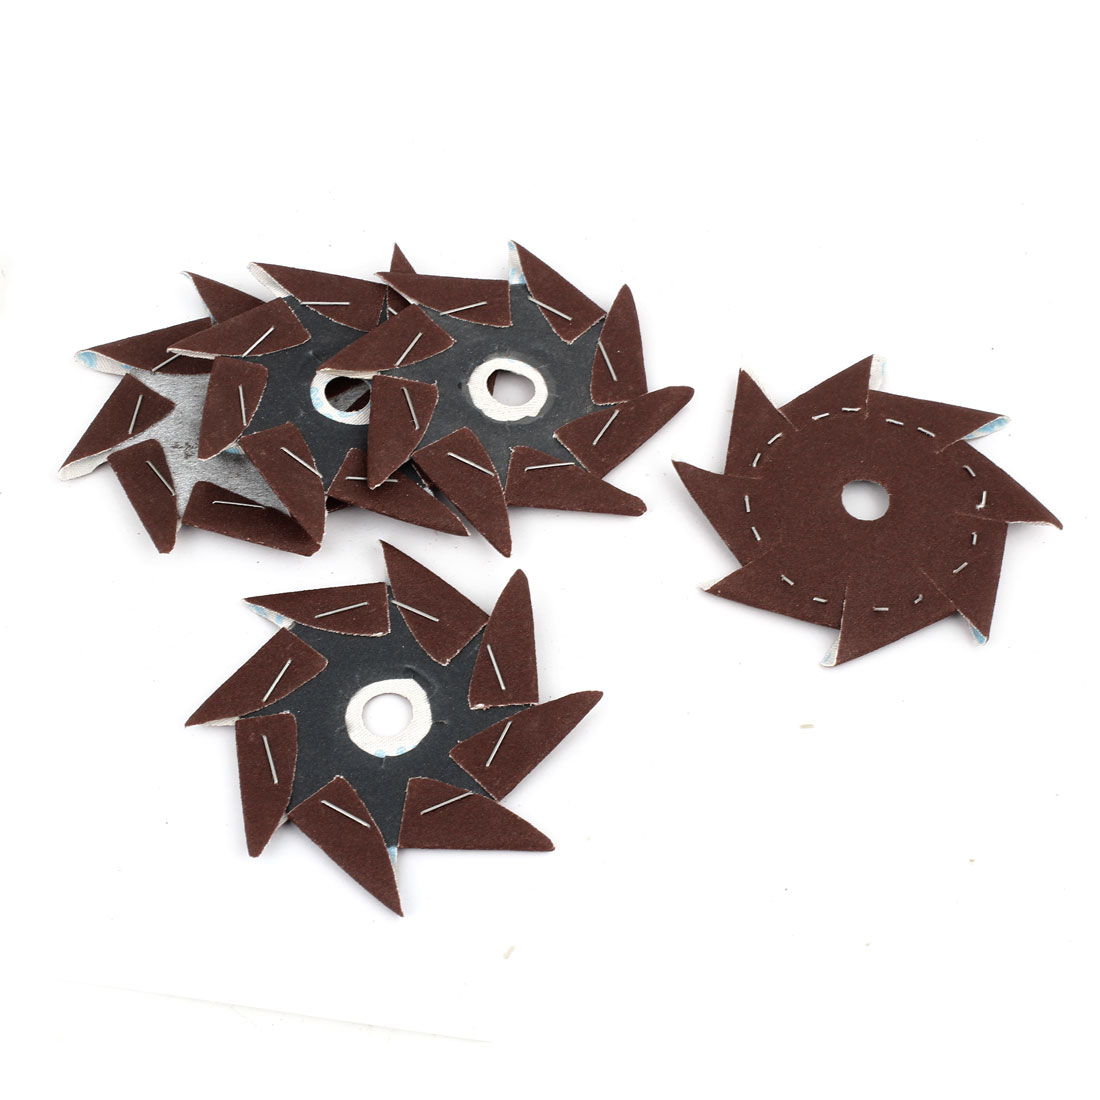 5 Pcs Pinwheel Shaped 150 Grit Waterproof Abrasive Sandpaper Sheet Dark Brown